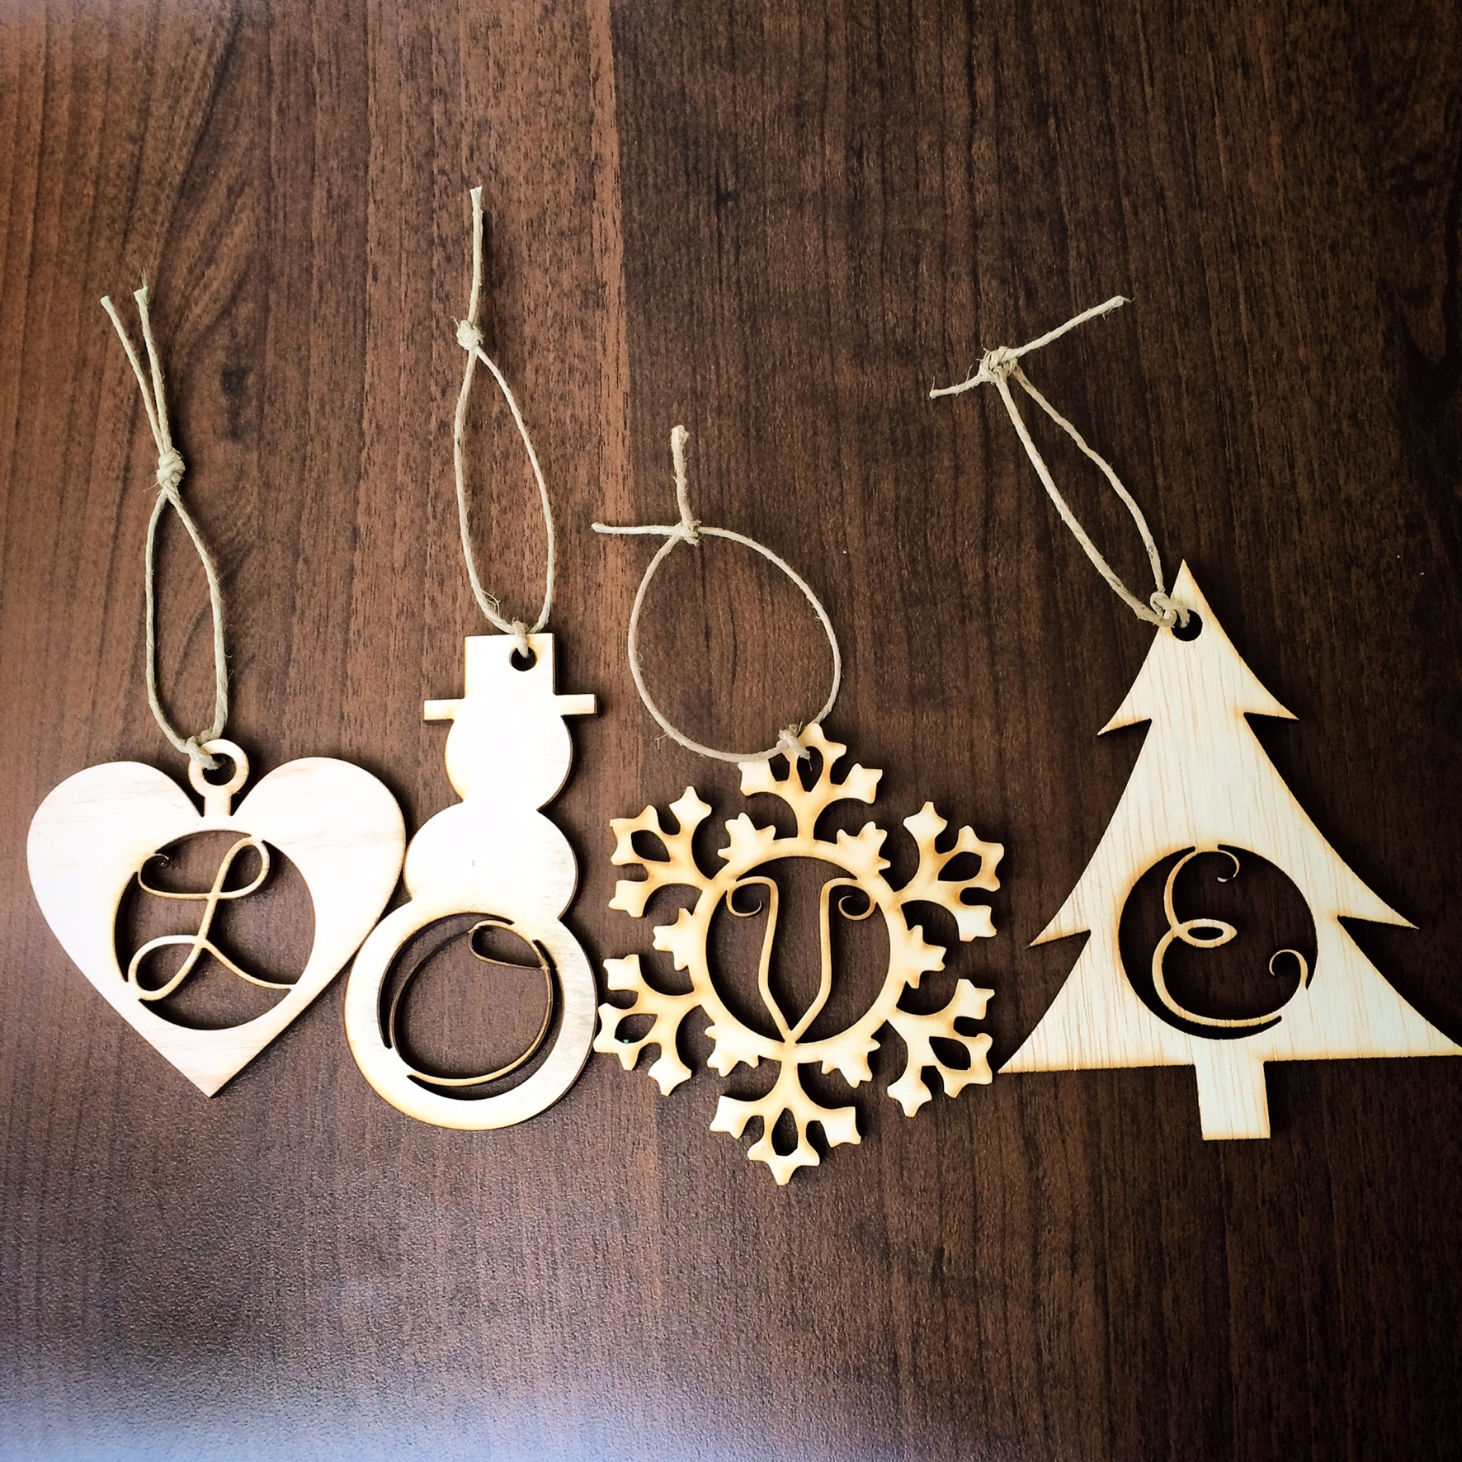 Initial Ornaments | Wood Letter Gift Tags | Innotations